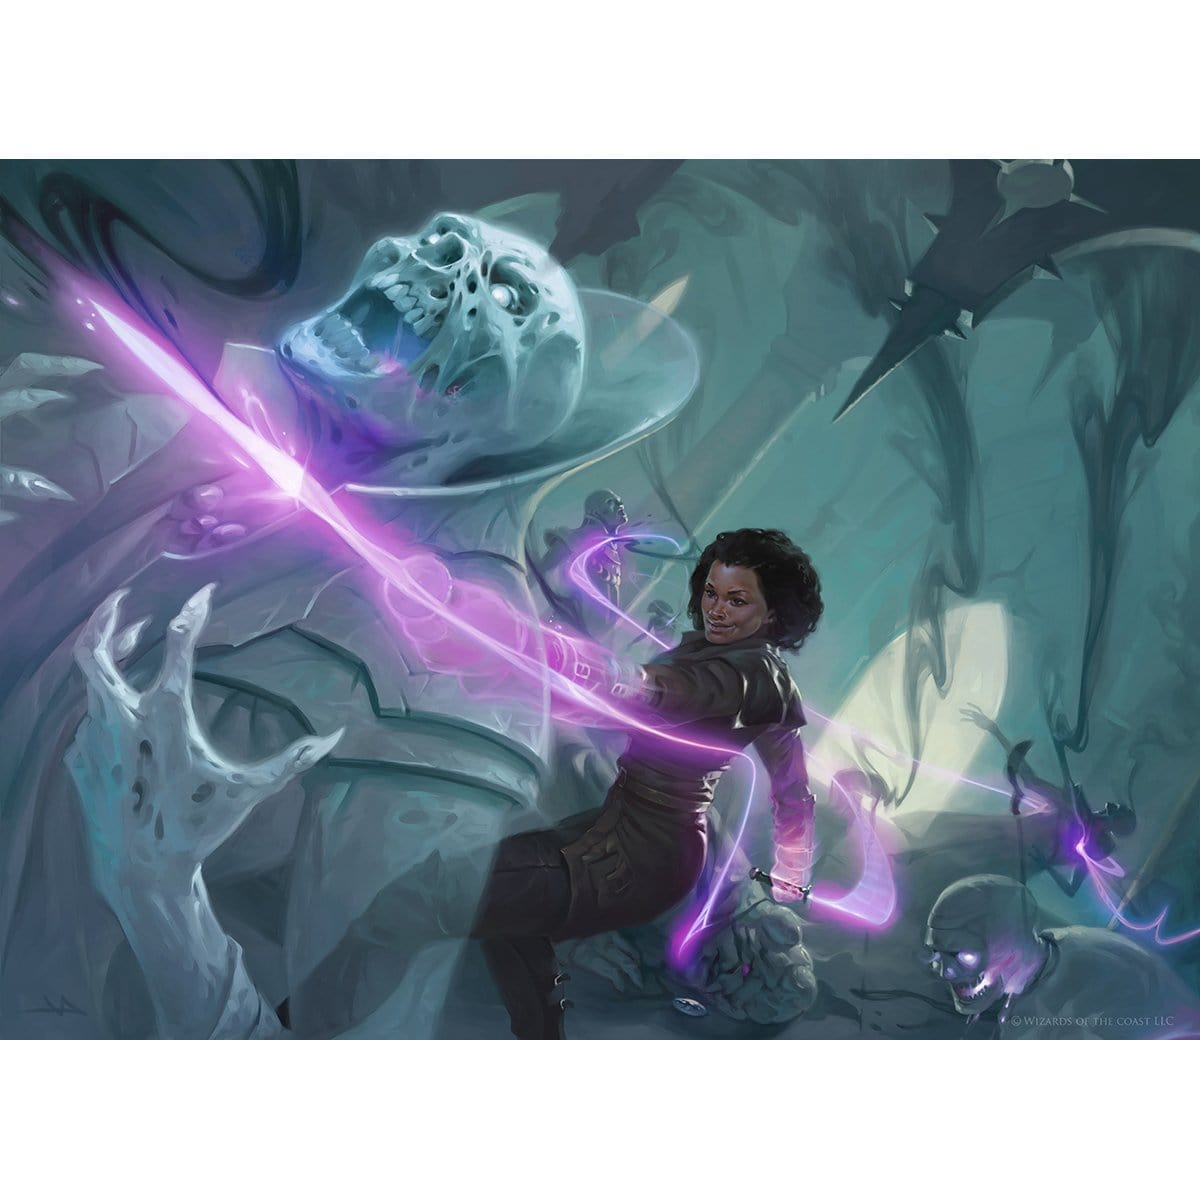 Kaya's Wrath Print - Print - Original Magic Art - Accessories for Magic the Gathering and other card games